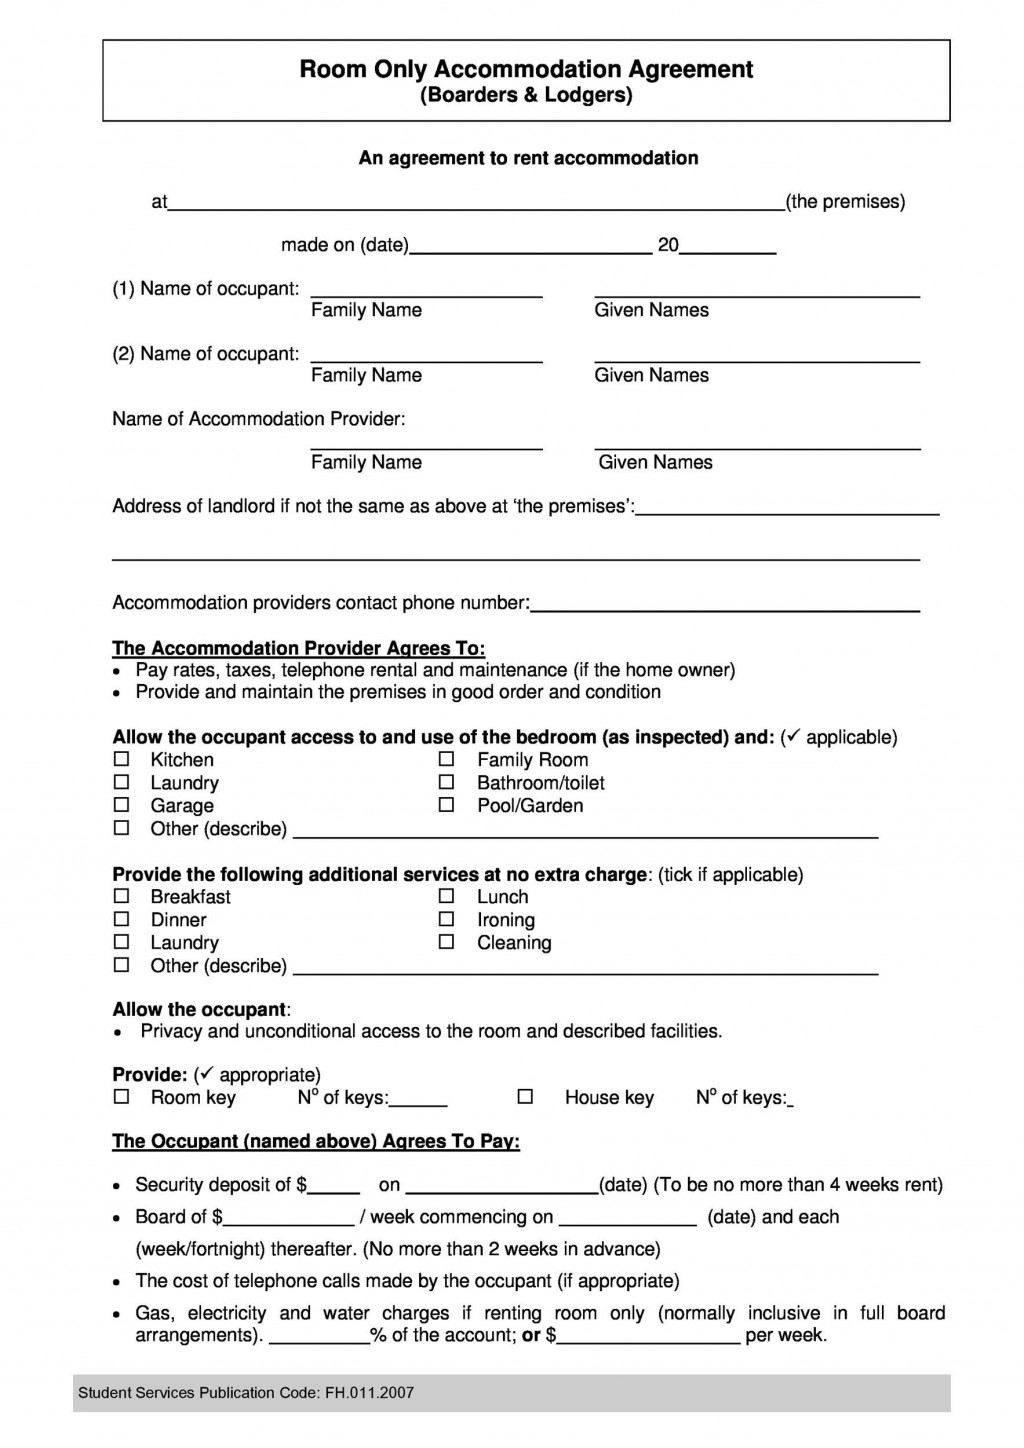 007 Fantastic Roommate Rental Agreement Template Idea  Form Free ContractLarge